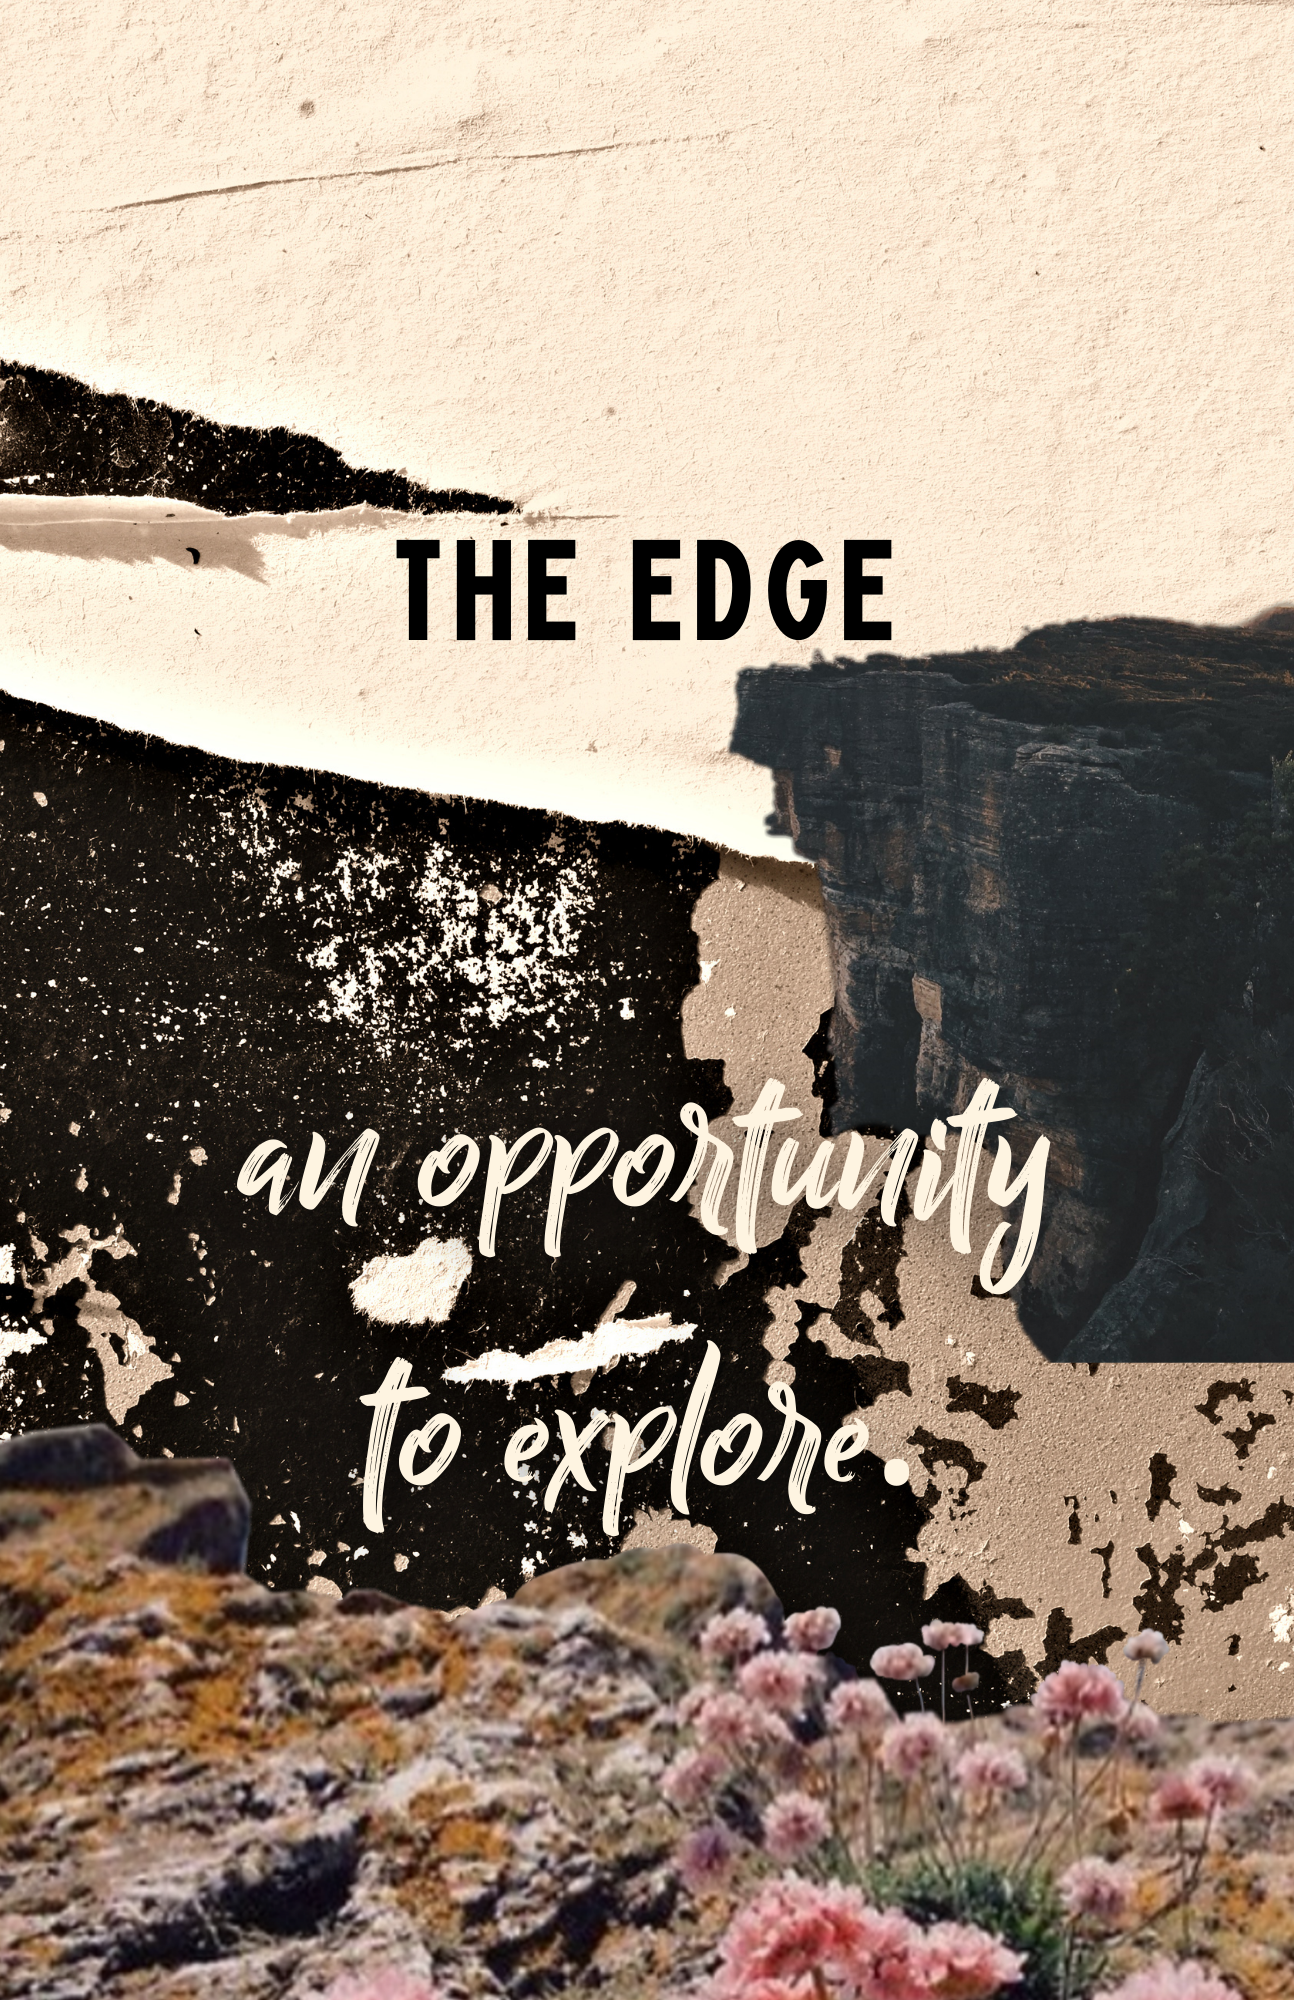 an opportunity to explore.